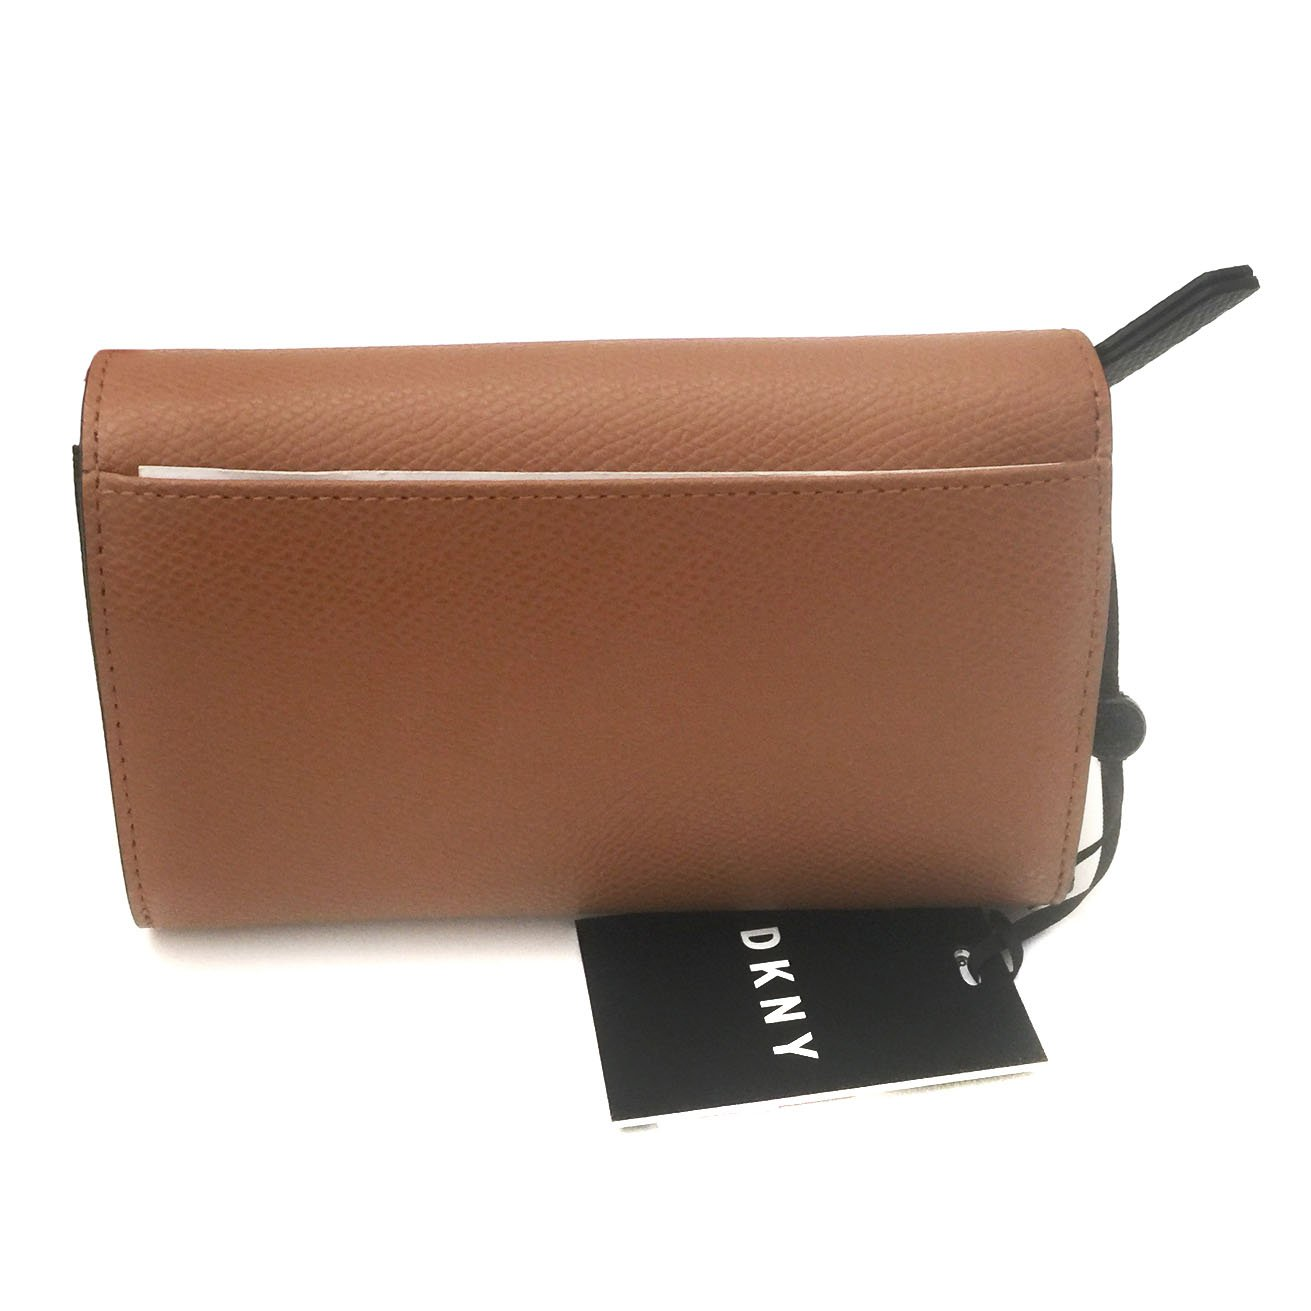 DKNY - Cartera para mujer Marrón caramelo Medium: Amazon.es ...